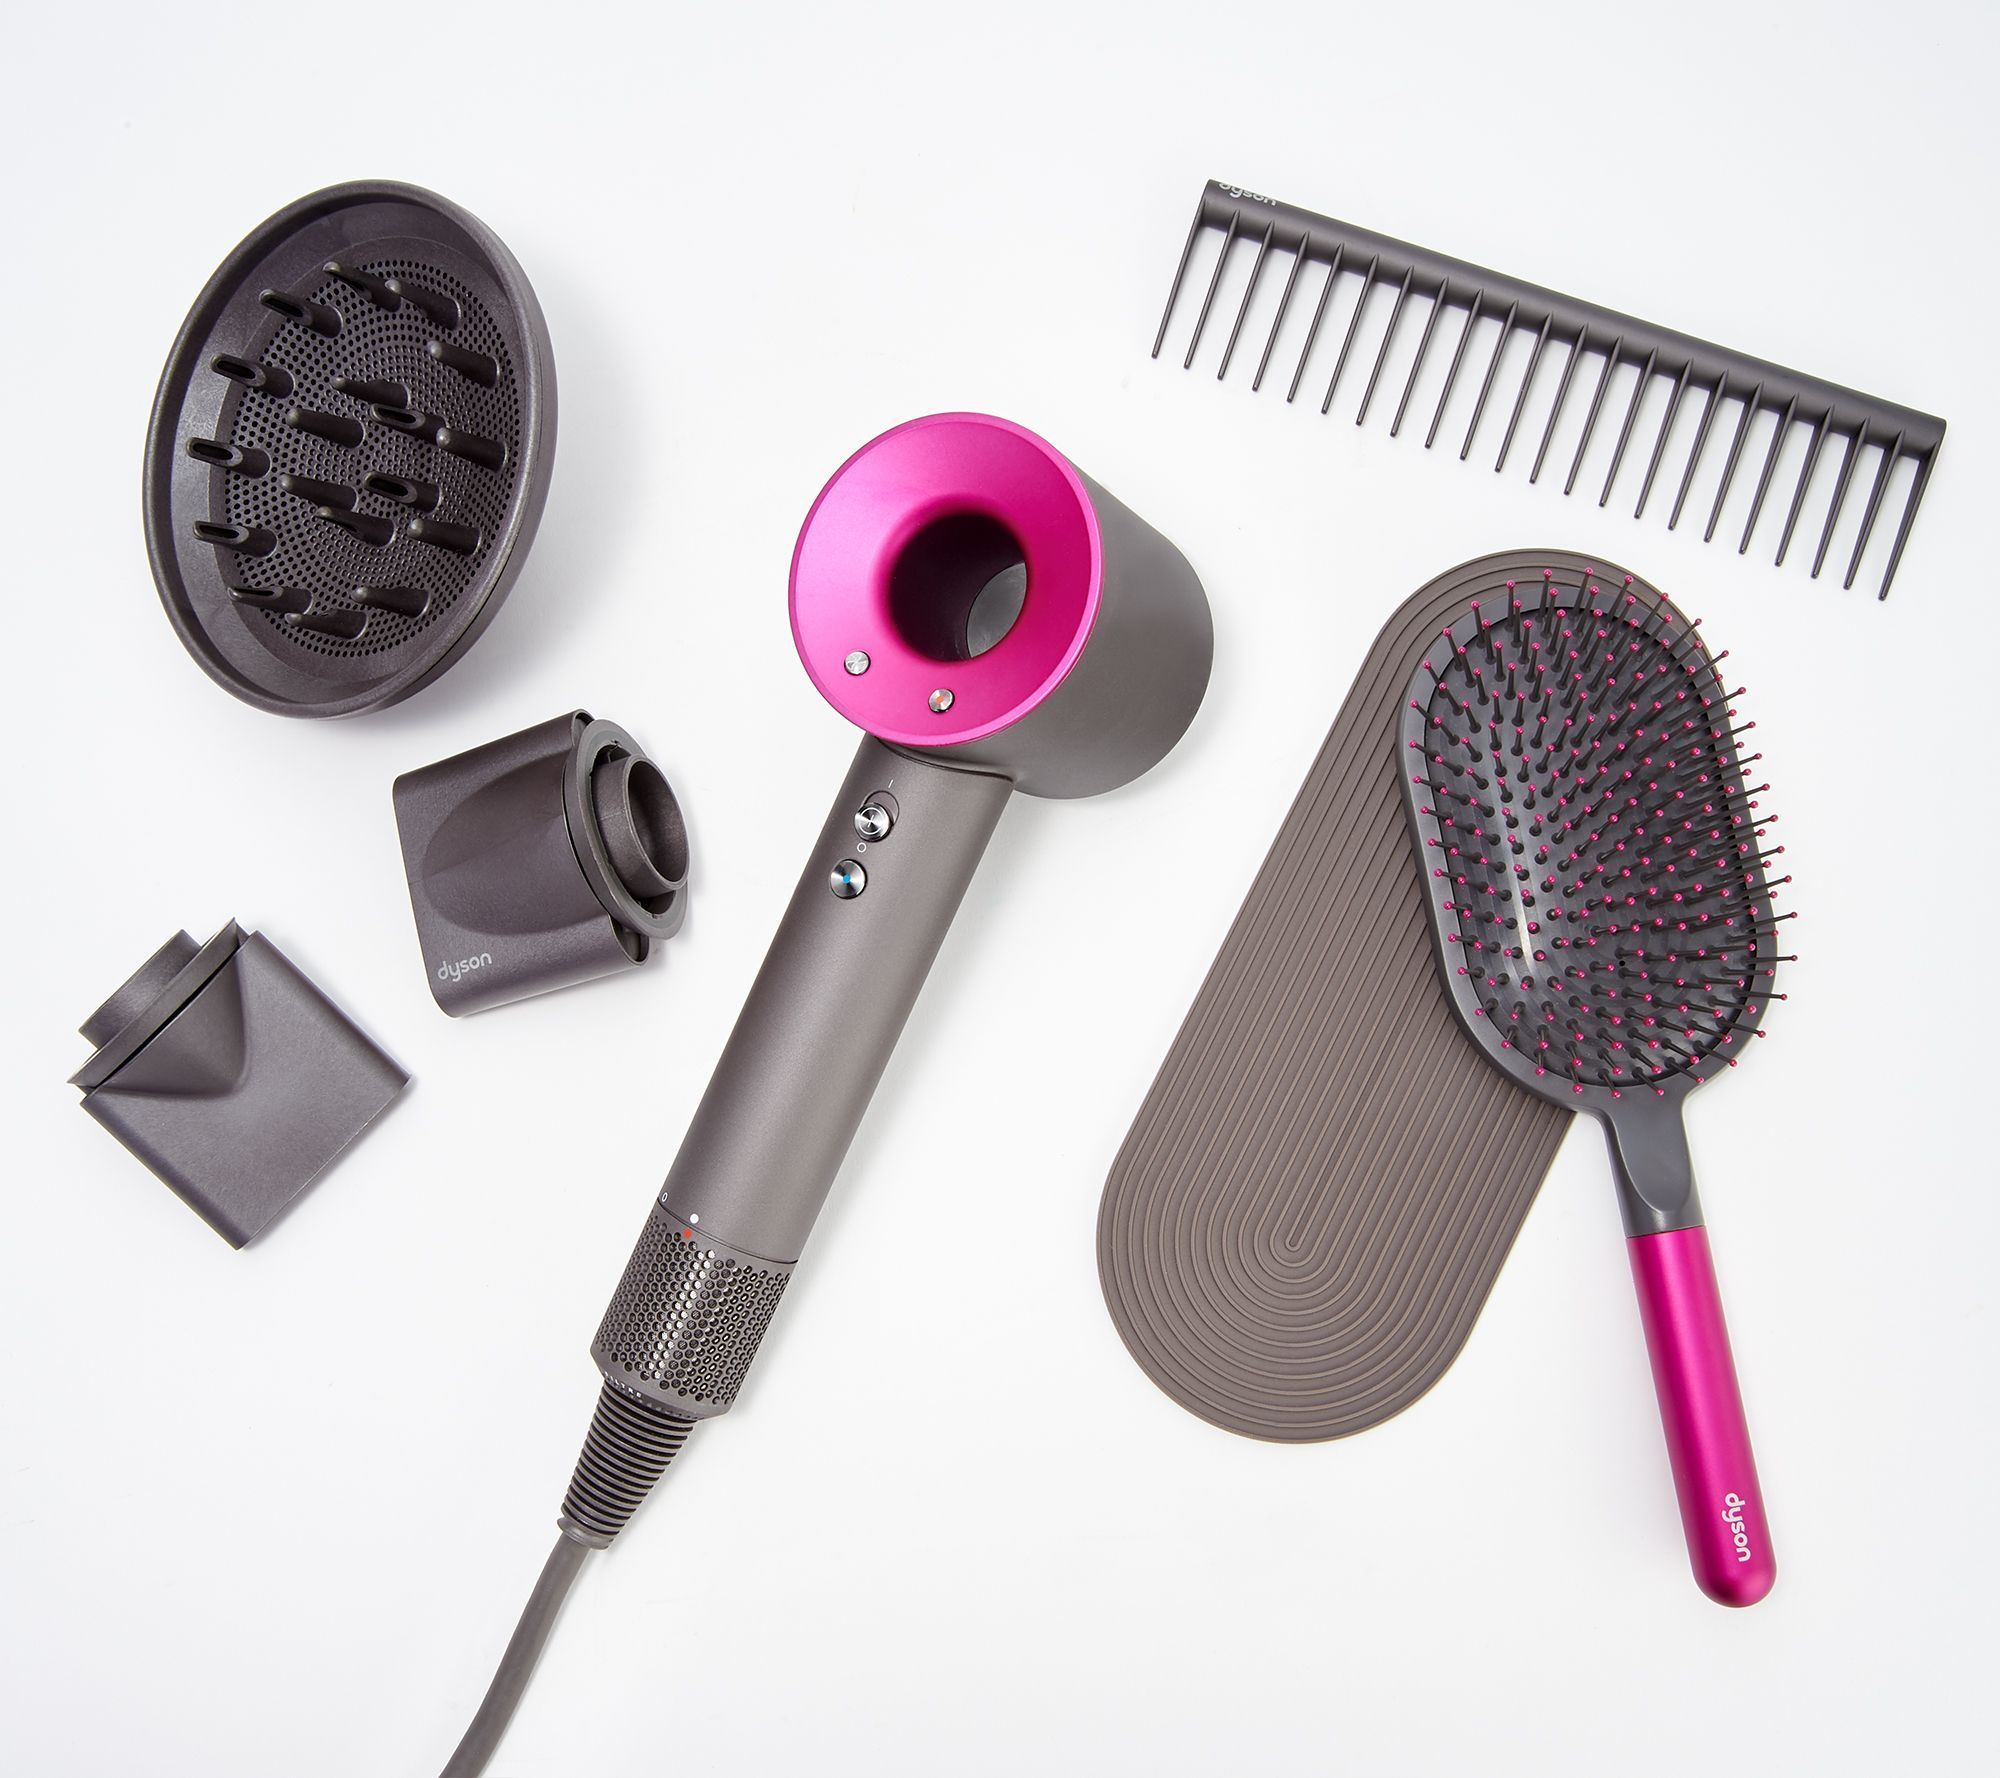 Dyson Supersonic Hair Dryer Kit with Brush & Comb — QVC